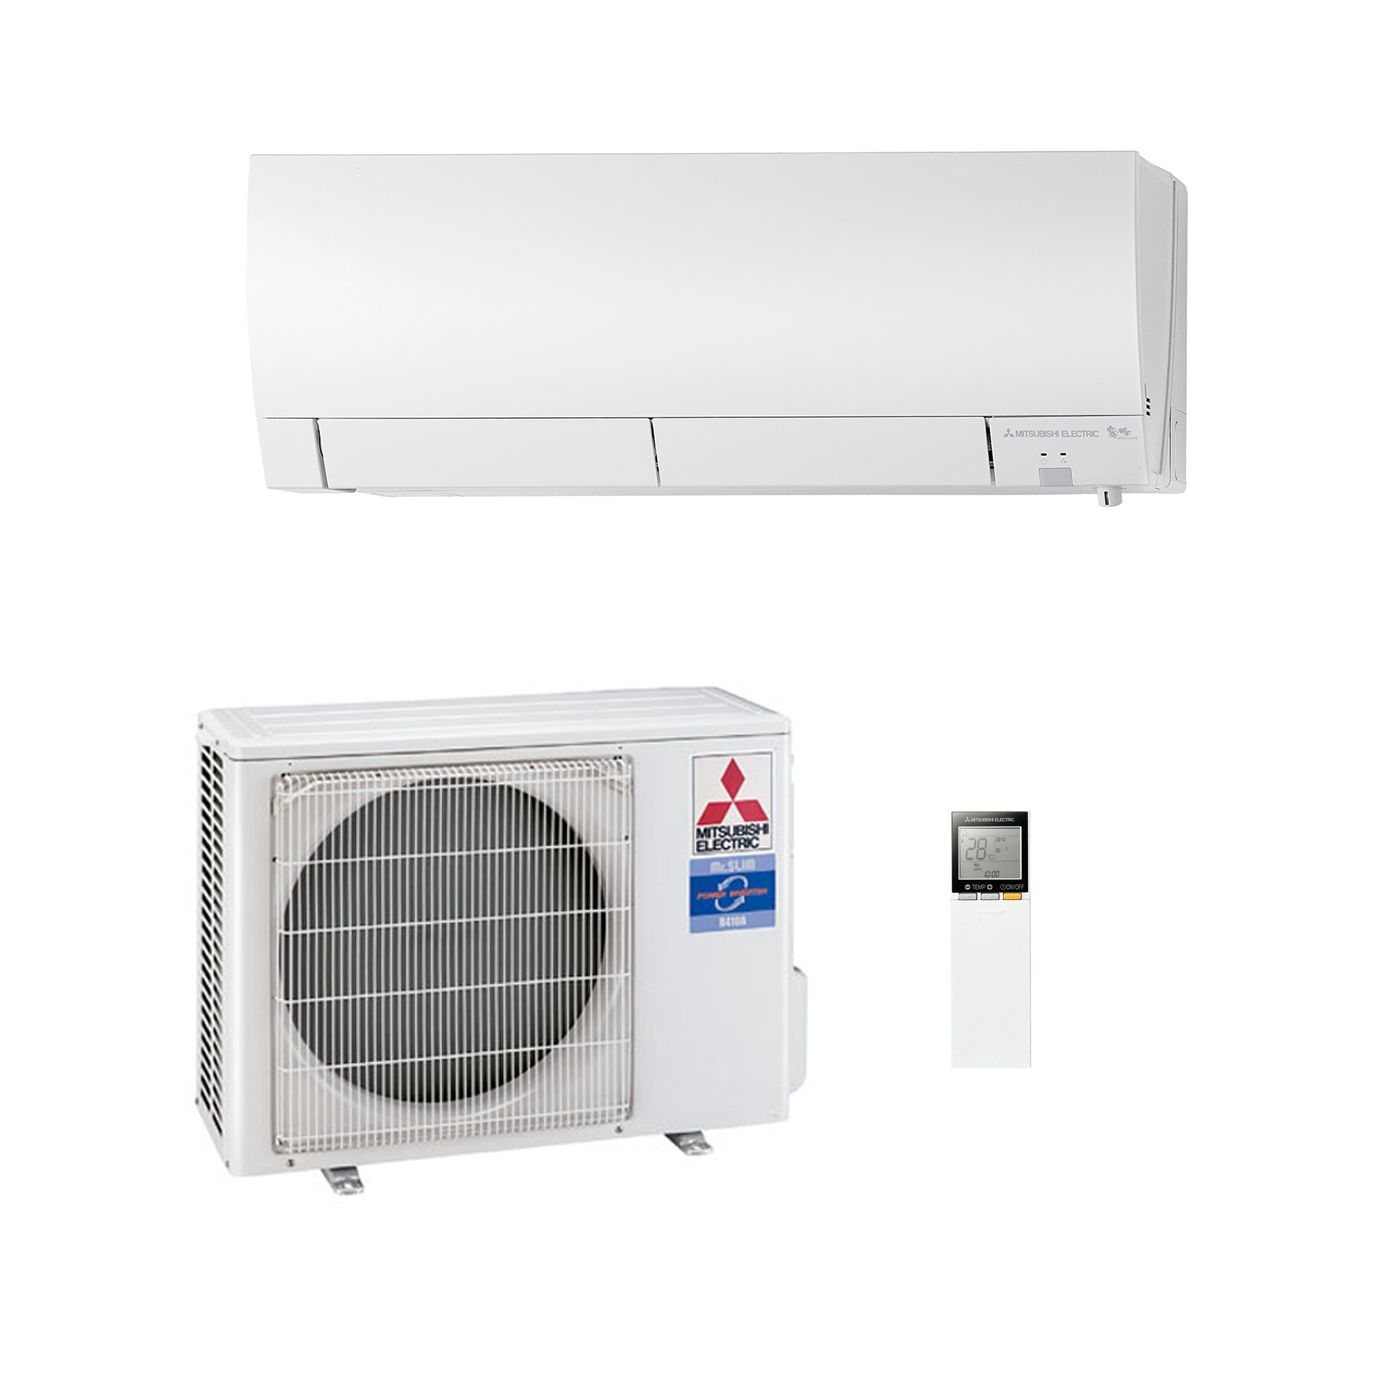 Superior Mitsubishi Electric Air Conditioning MSZ FH25VE Wall Mounted 2.5Kw/9000Btu  Inverter Heat Pump A+++ 240V~50Hz